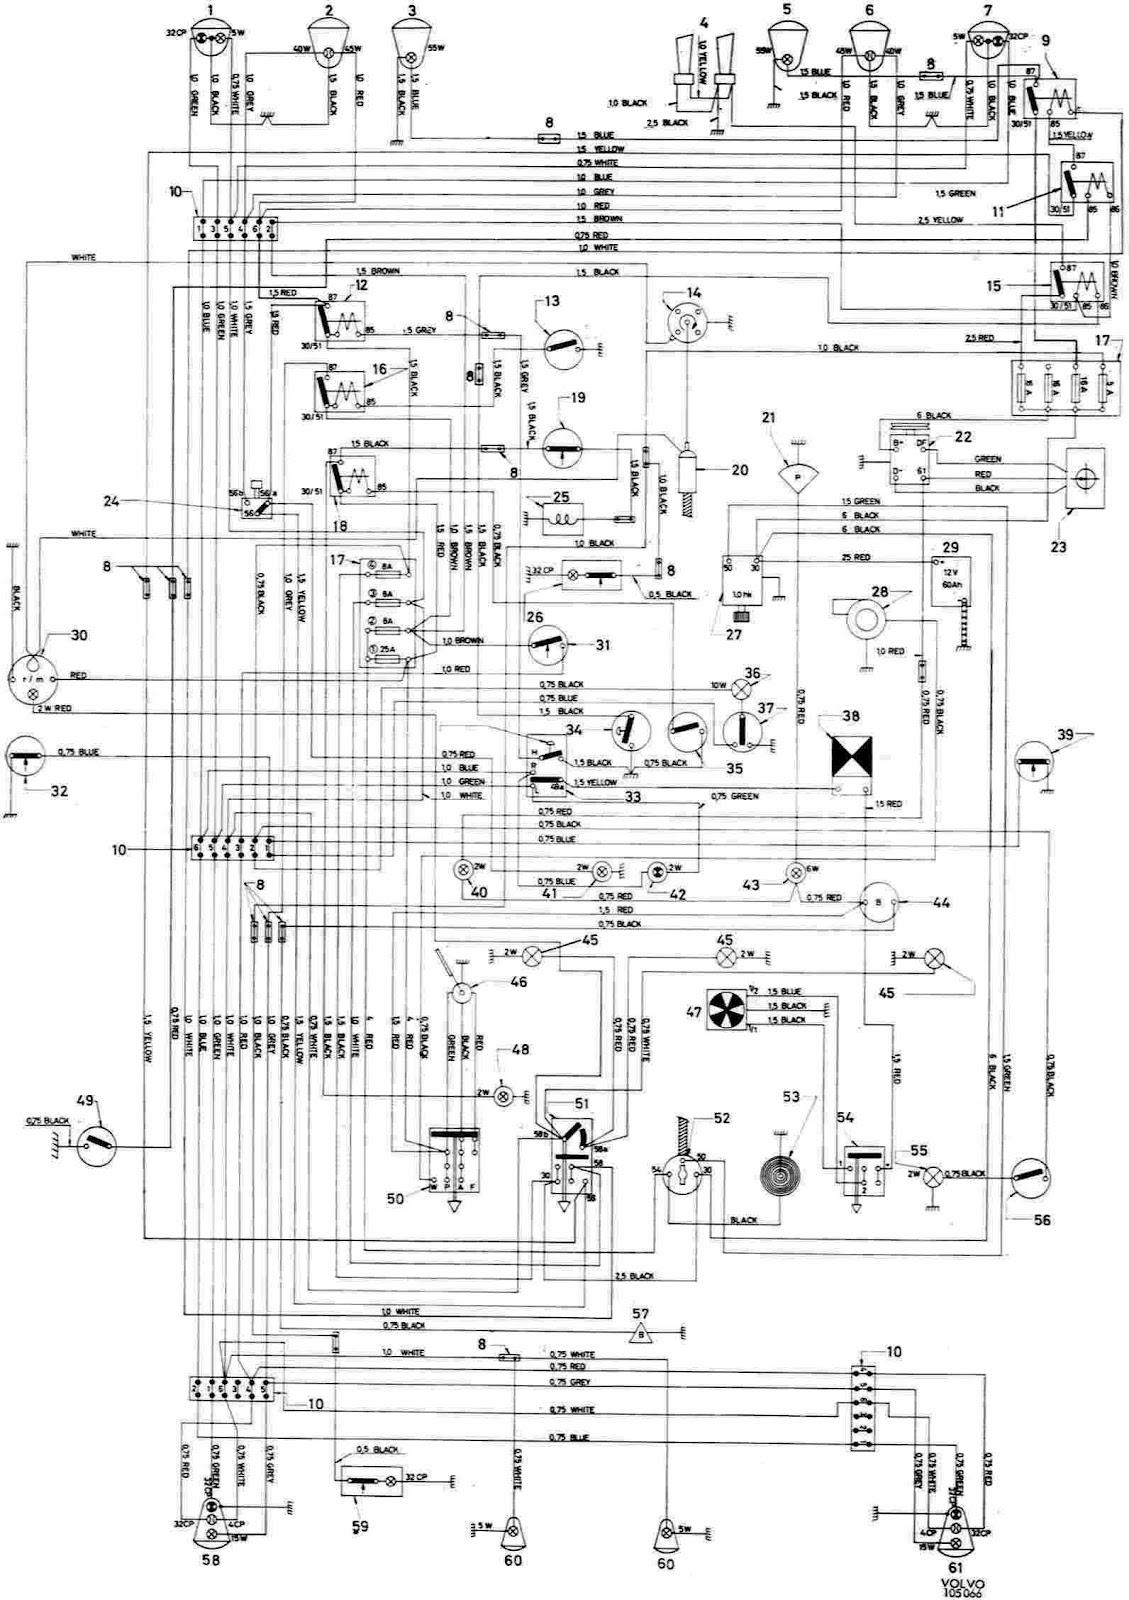 Volvo+123+GT+Complete+Wiring+Diagram hu 613 wiring diagram boat wiring diagram \u2022 wiring diagrams j volvo wiring harness at gsmx.co